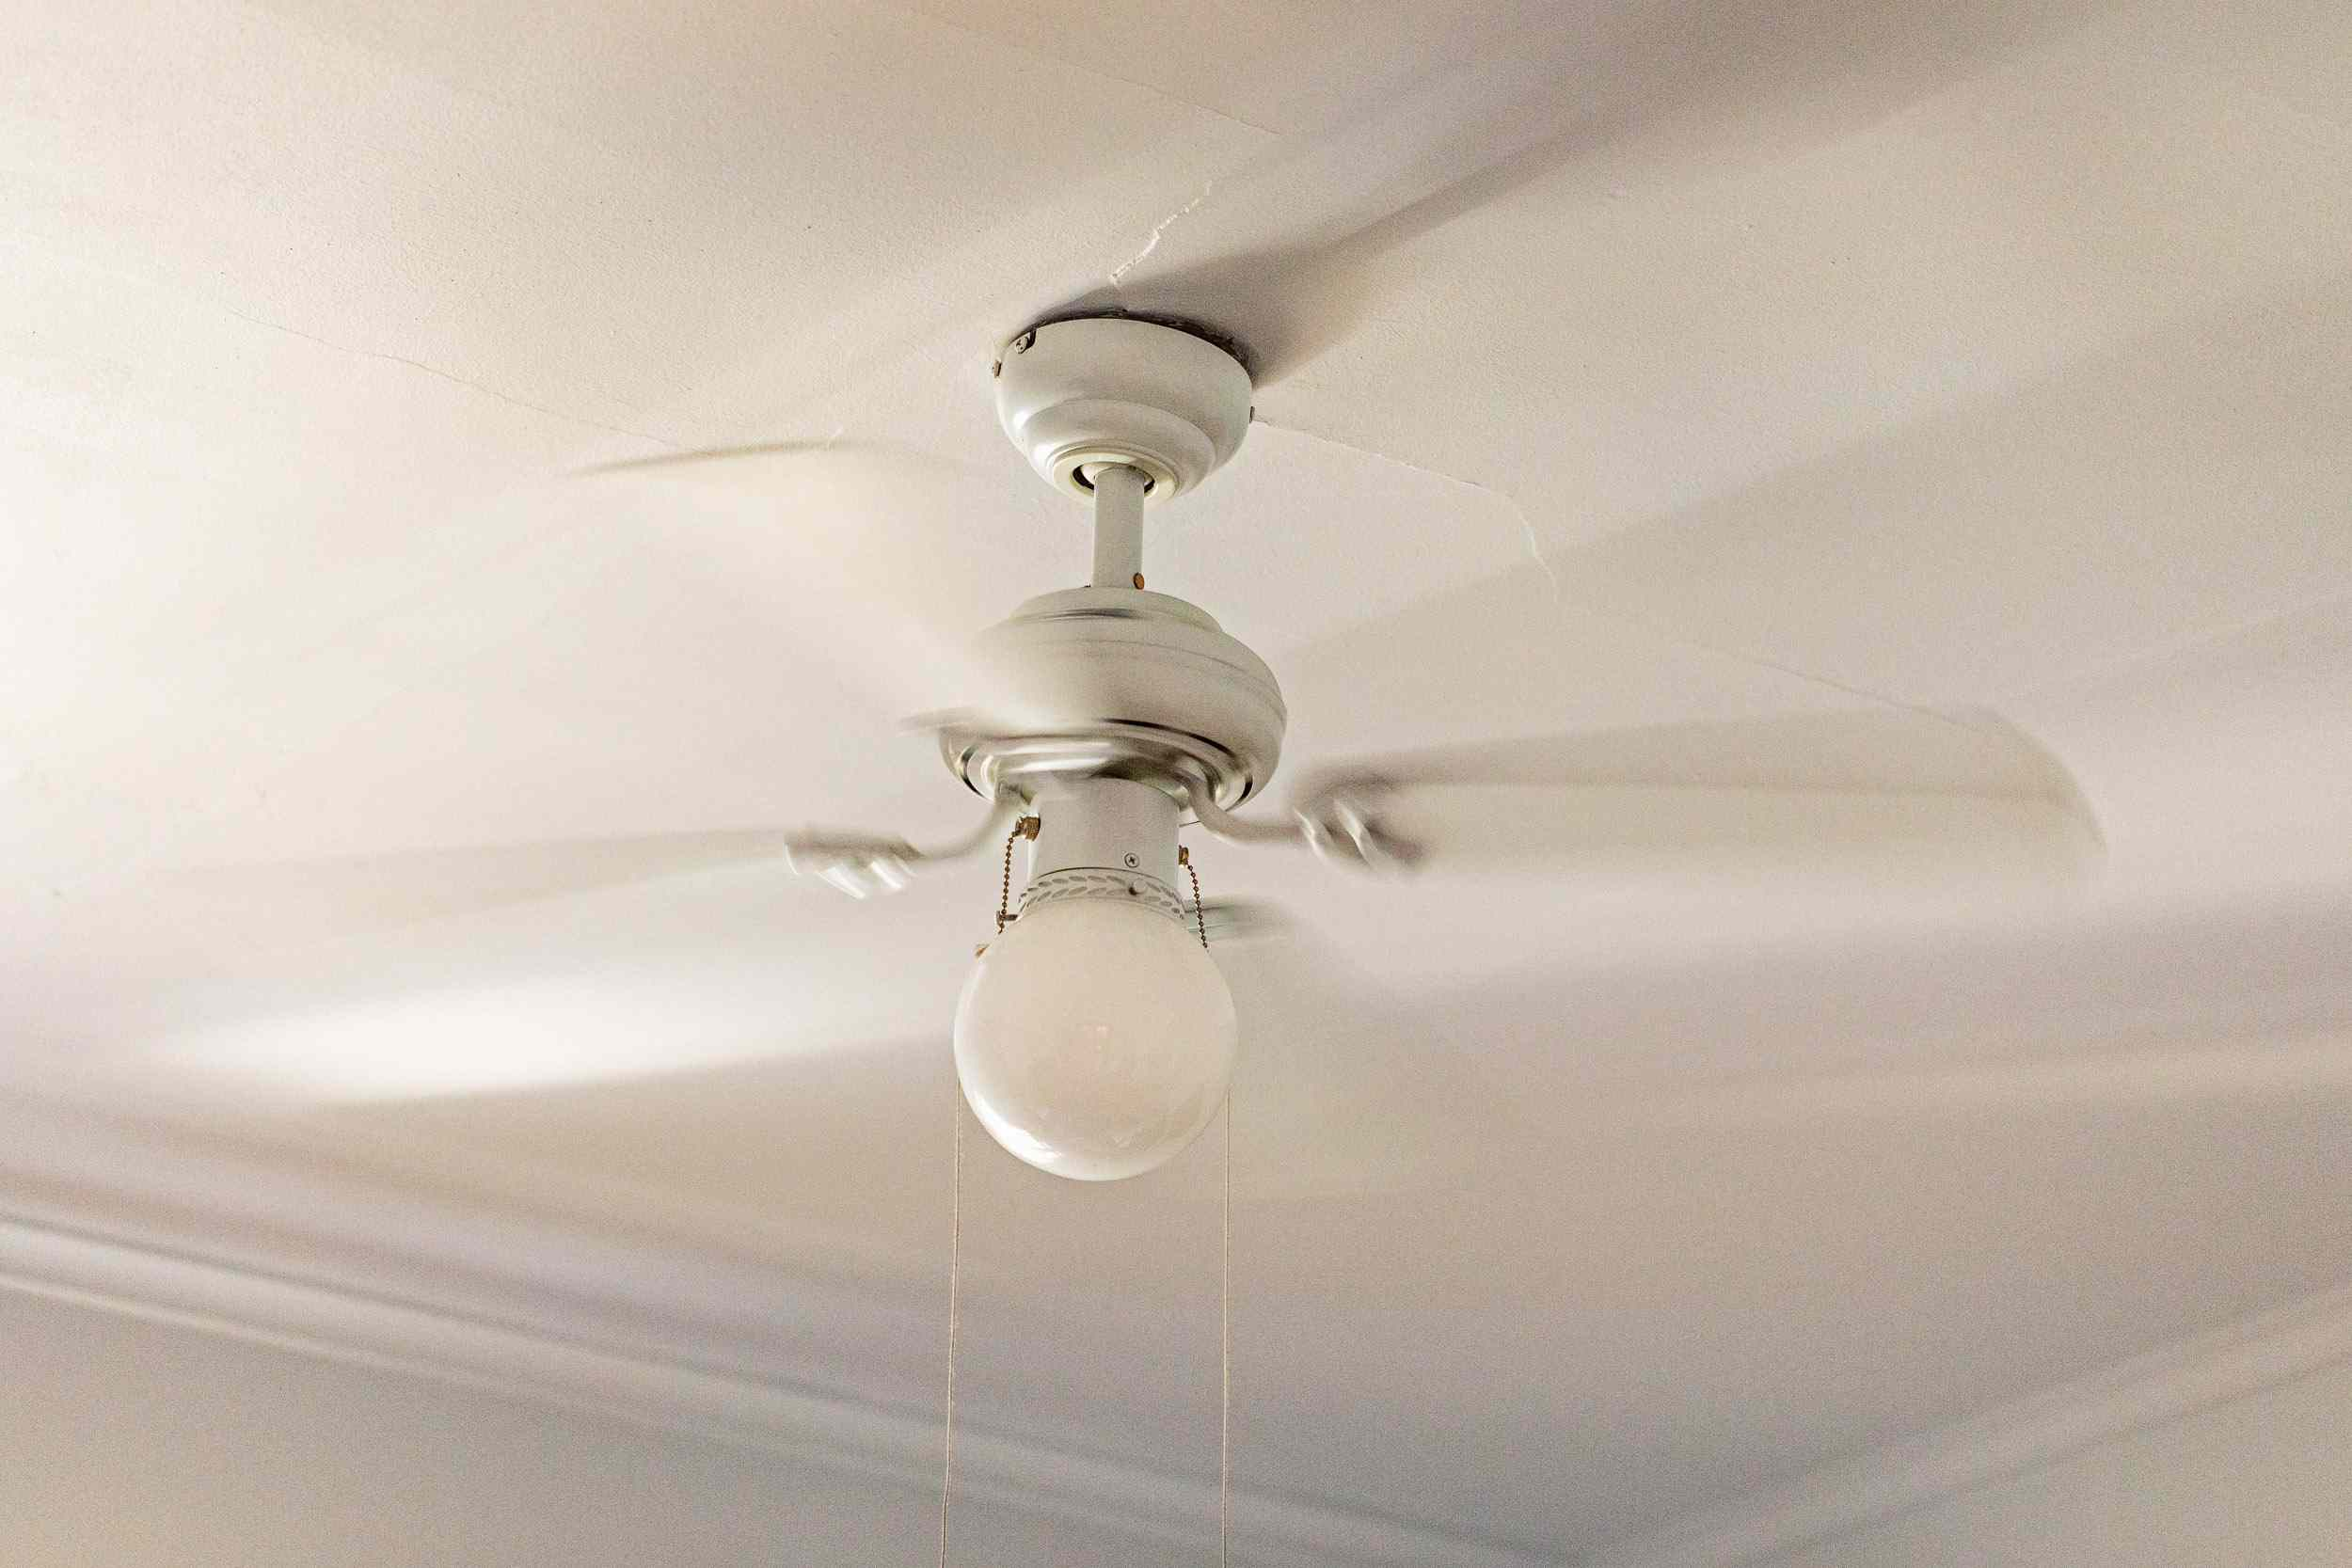 a ceiling fan that's turned on